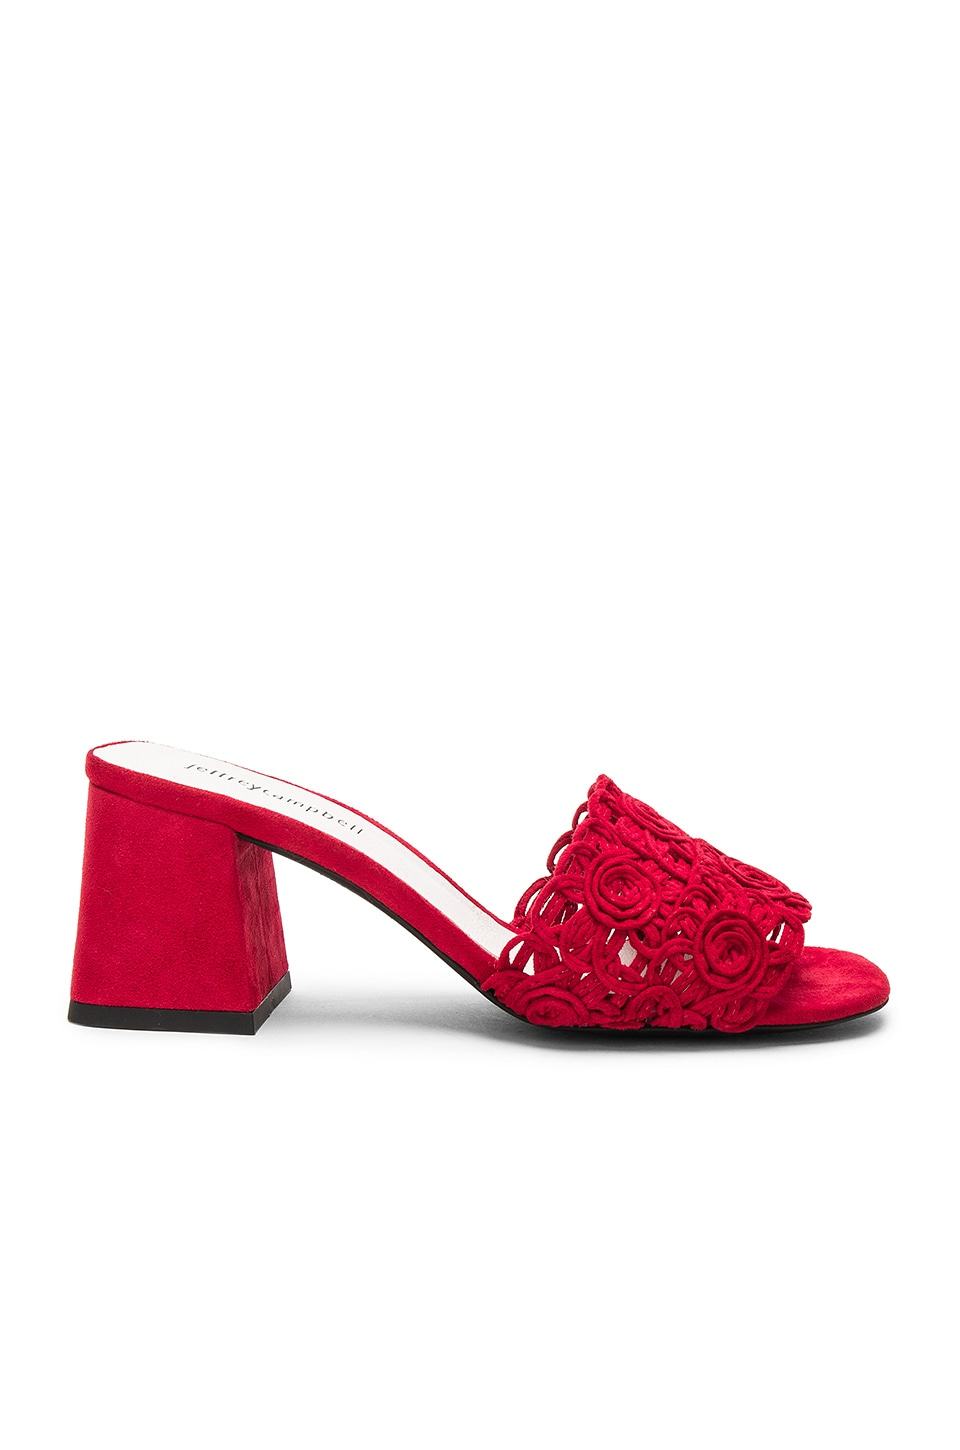 Jeffrey Campbell Tiza Heel in Red Suede